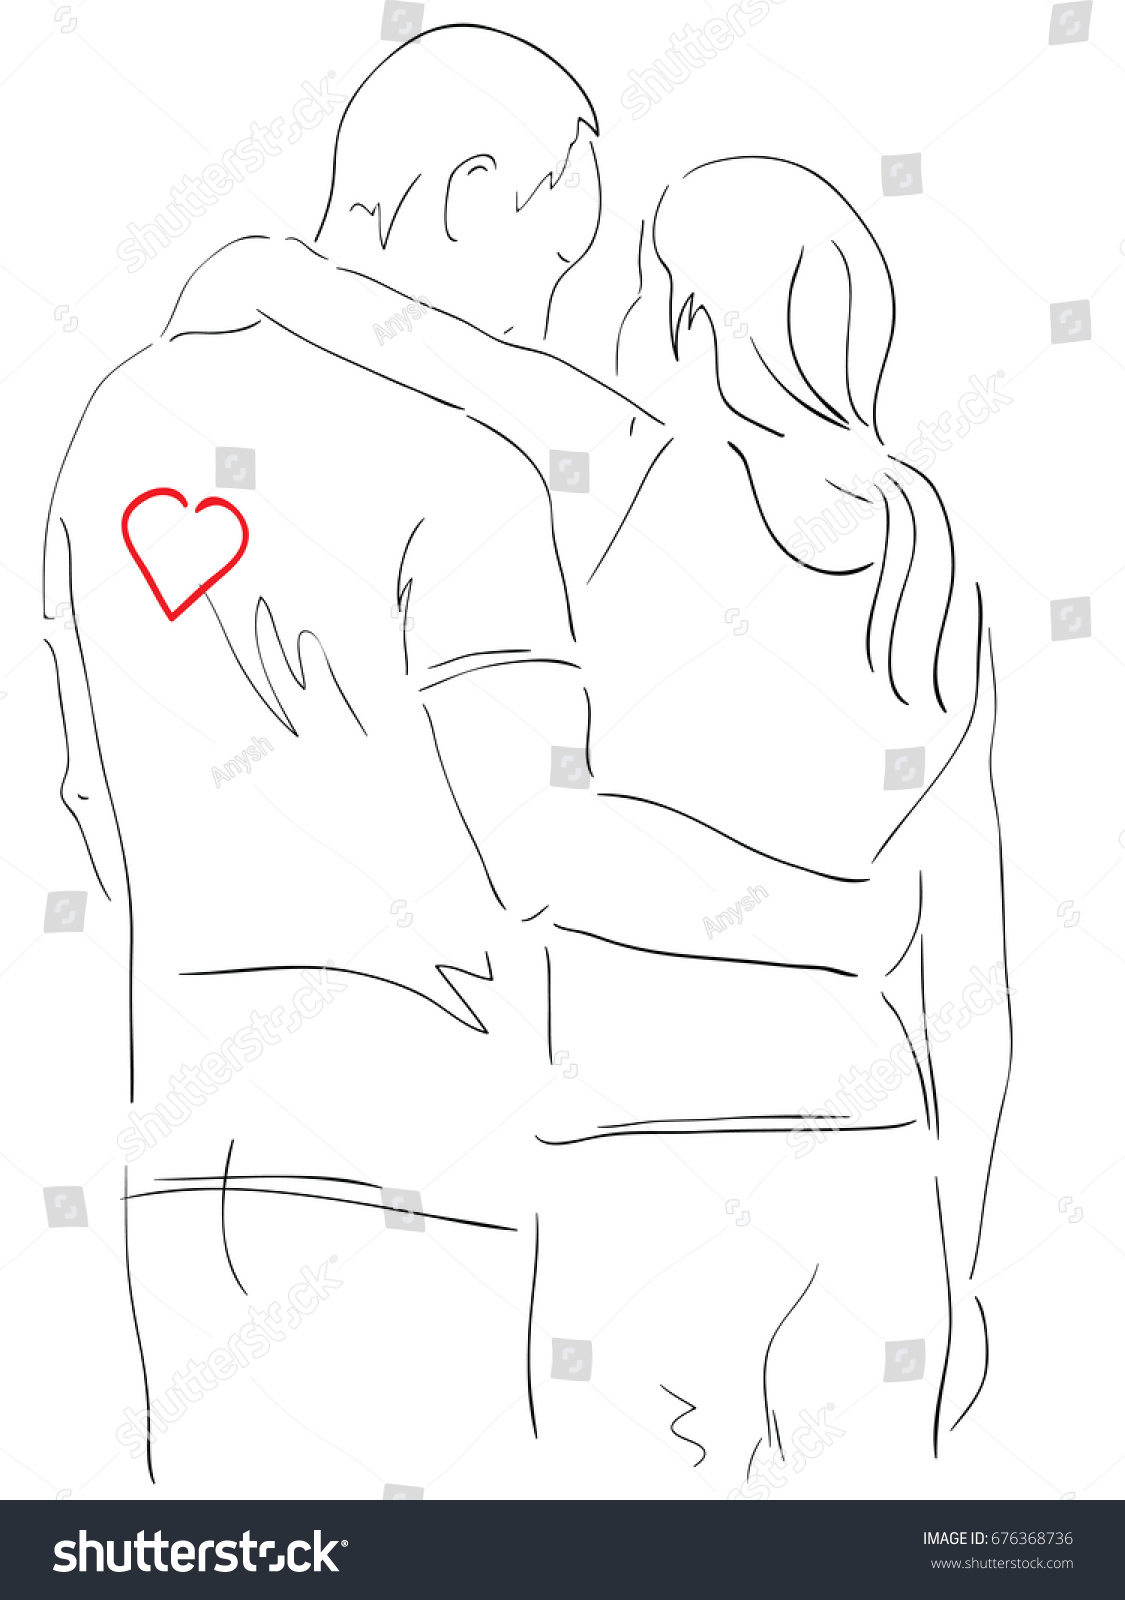 Pencil drawing of a man and a woman couple hugging each other the man